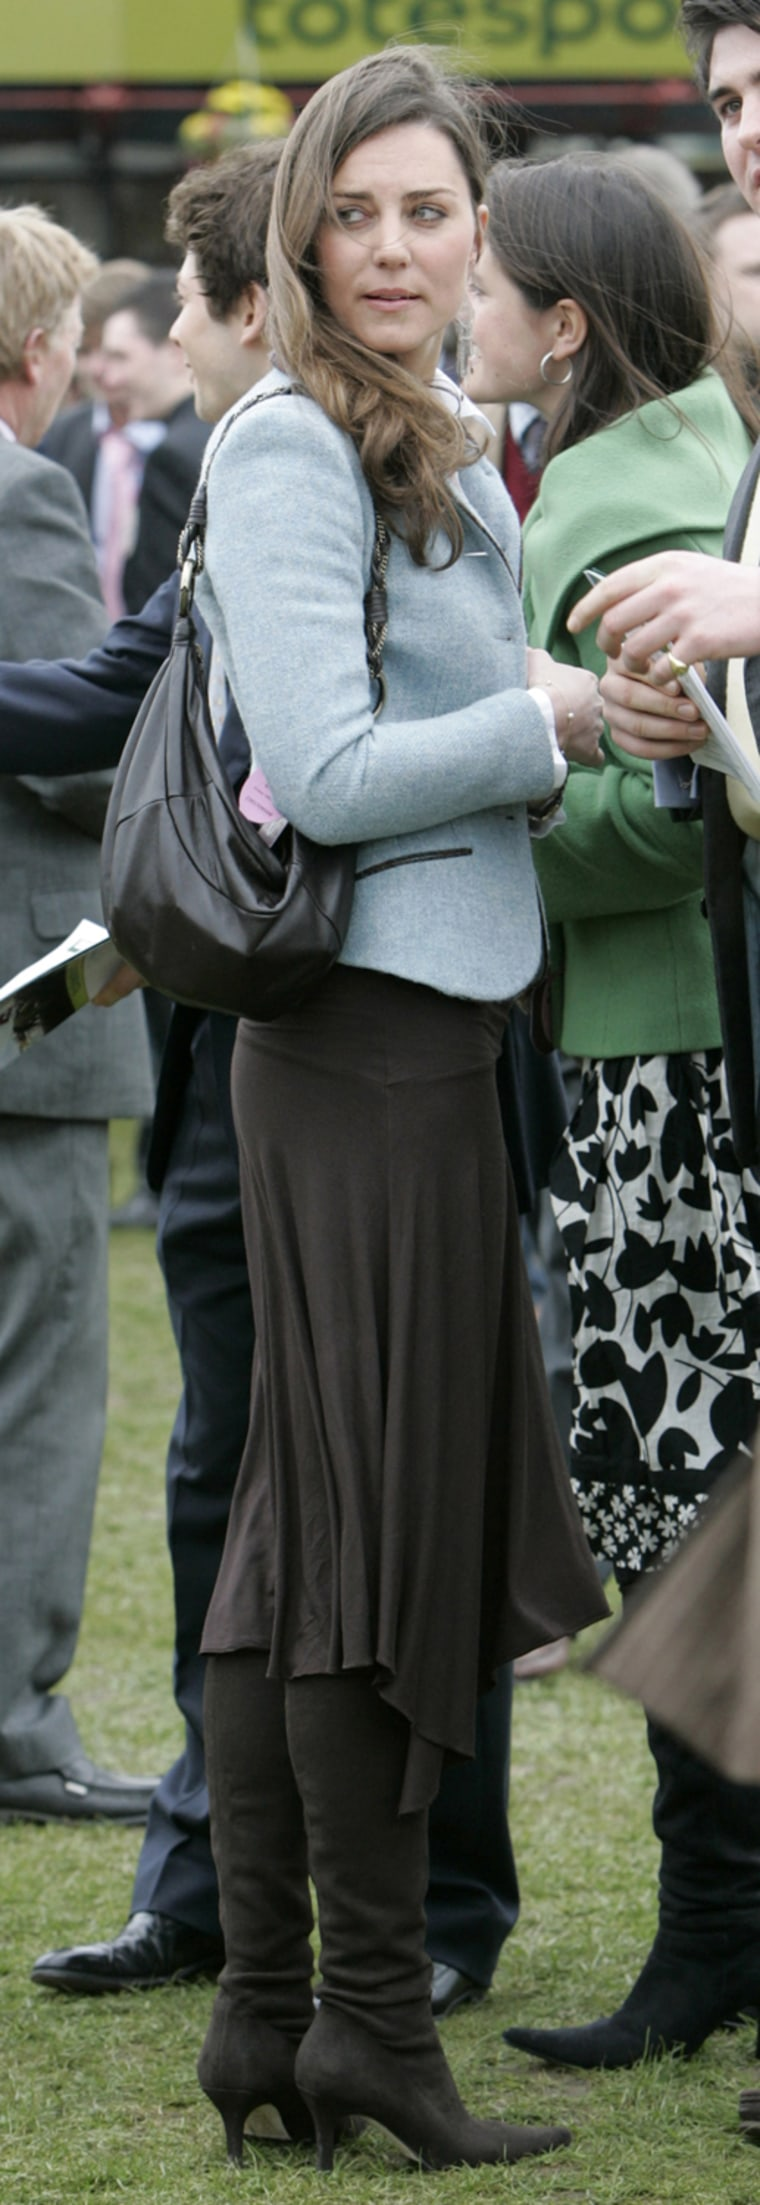 Image: File photograph shows the girlfriend of Britain's Prince William, Kate Middleton, attending the final day of the Cheltenham Festival horse racing in Gloucestershire, western England